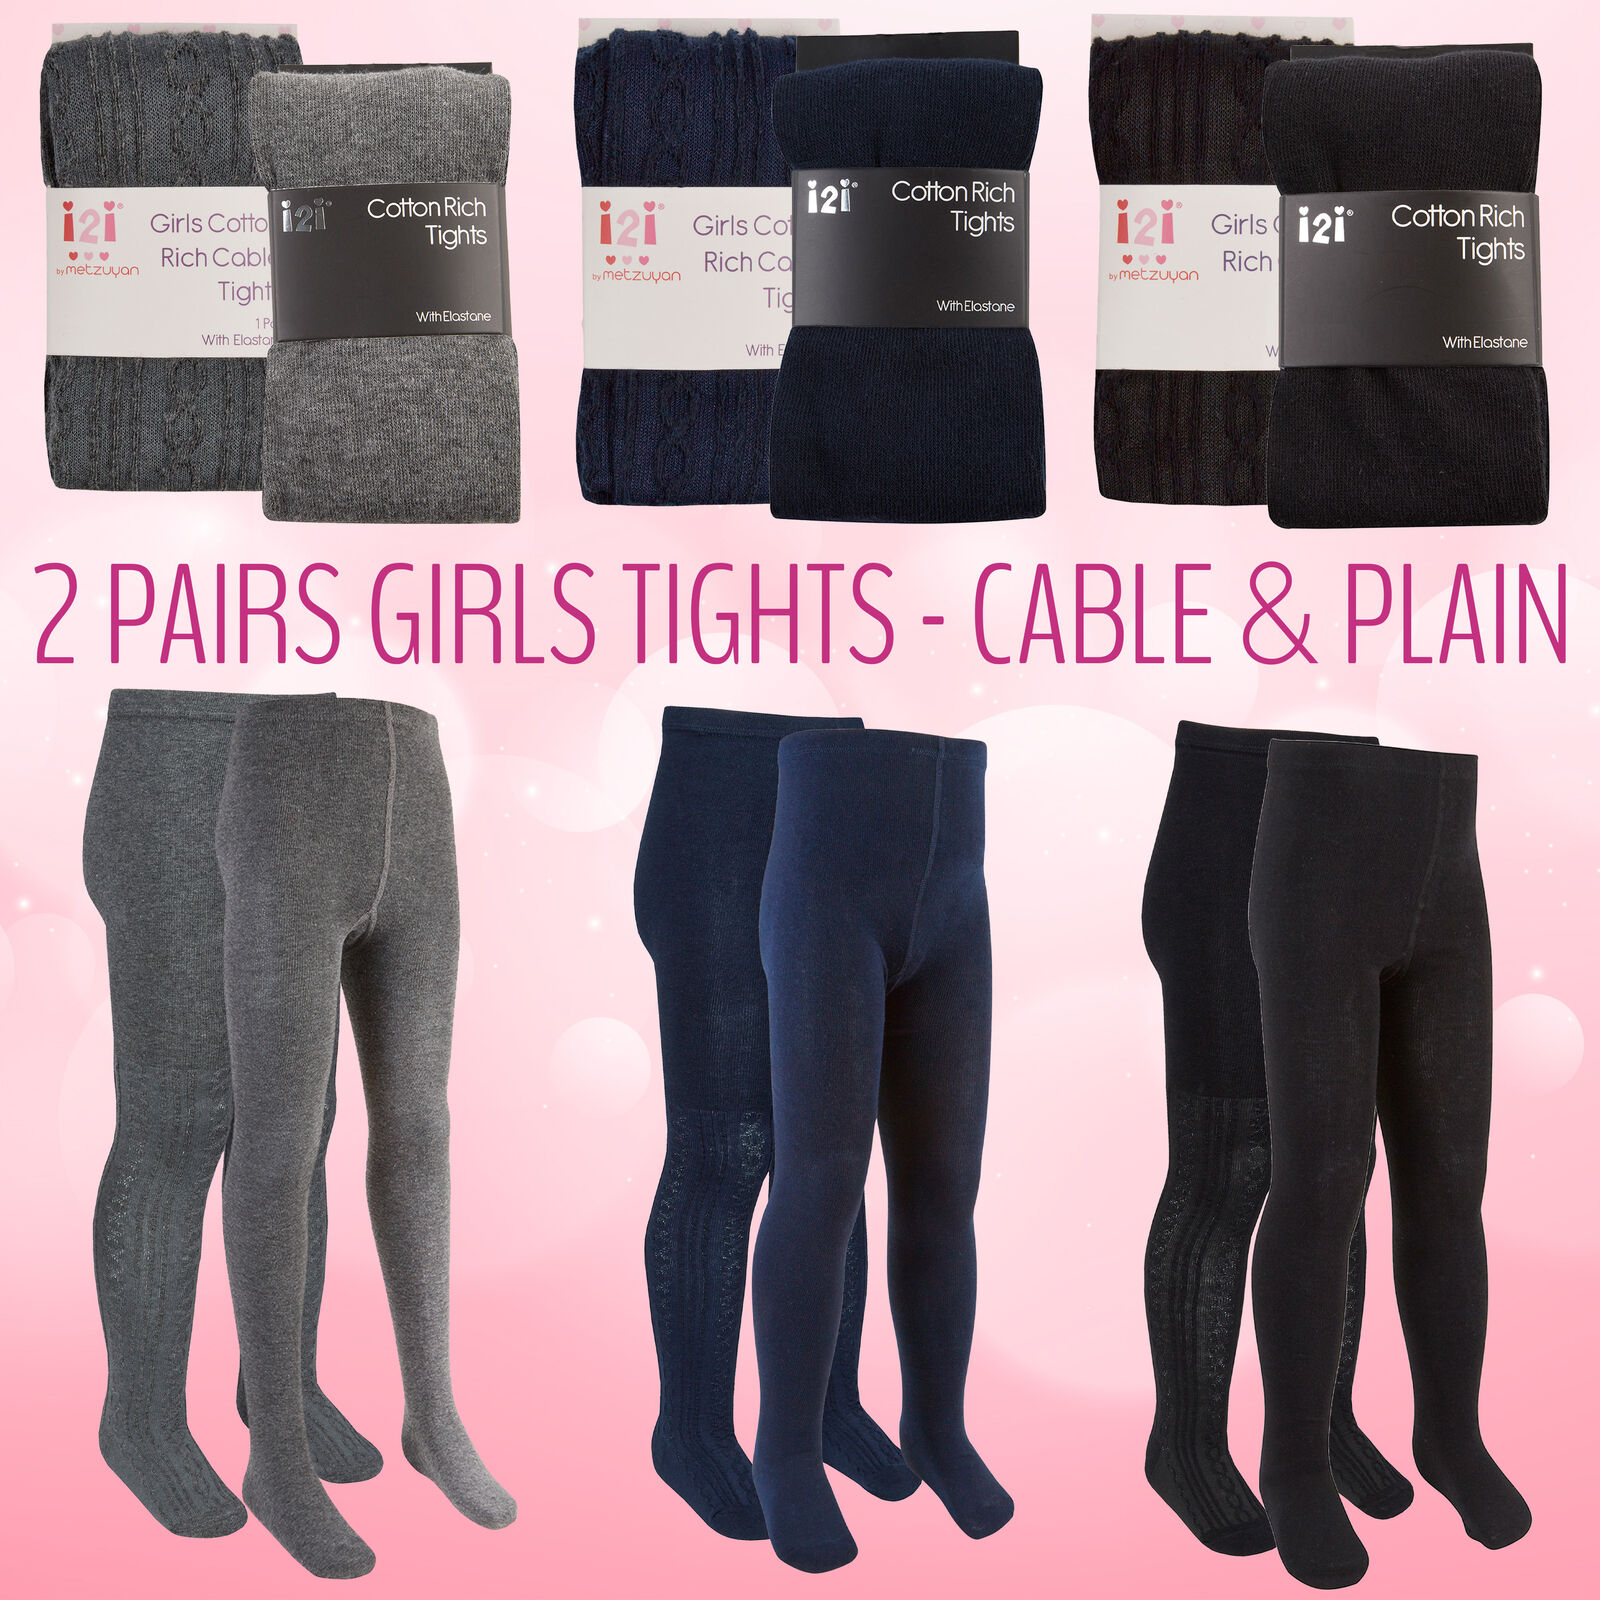 * Pack of 2 Pairs Girls Cable Plain Cotton Rich Tights Uniform School 2-10 Years